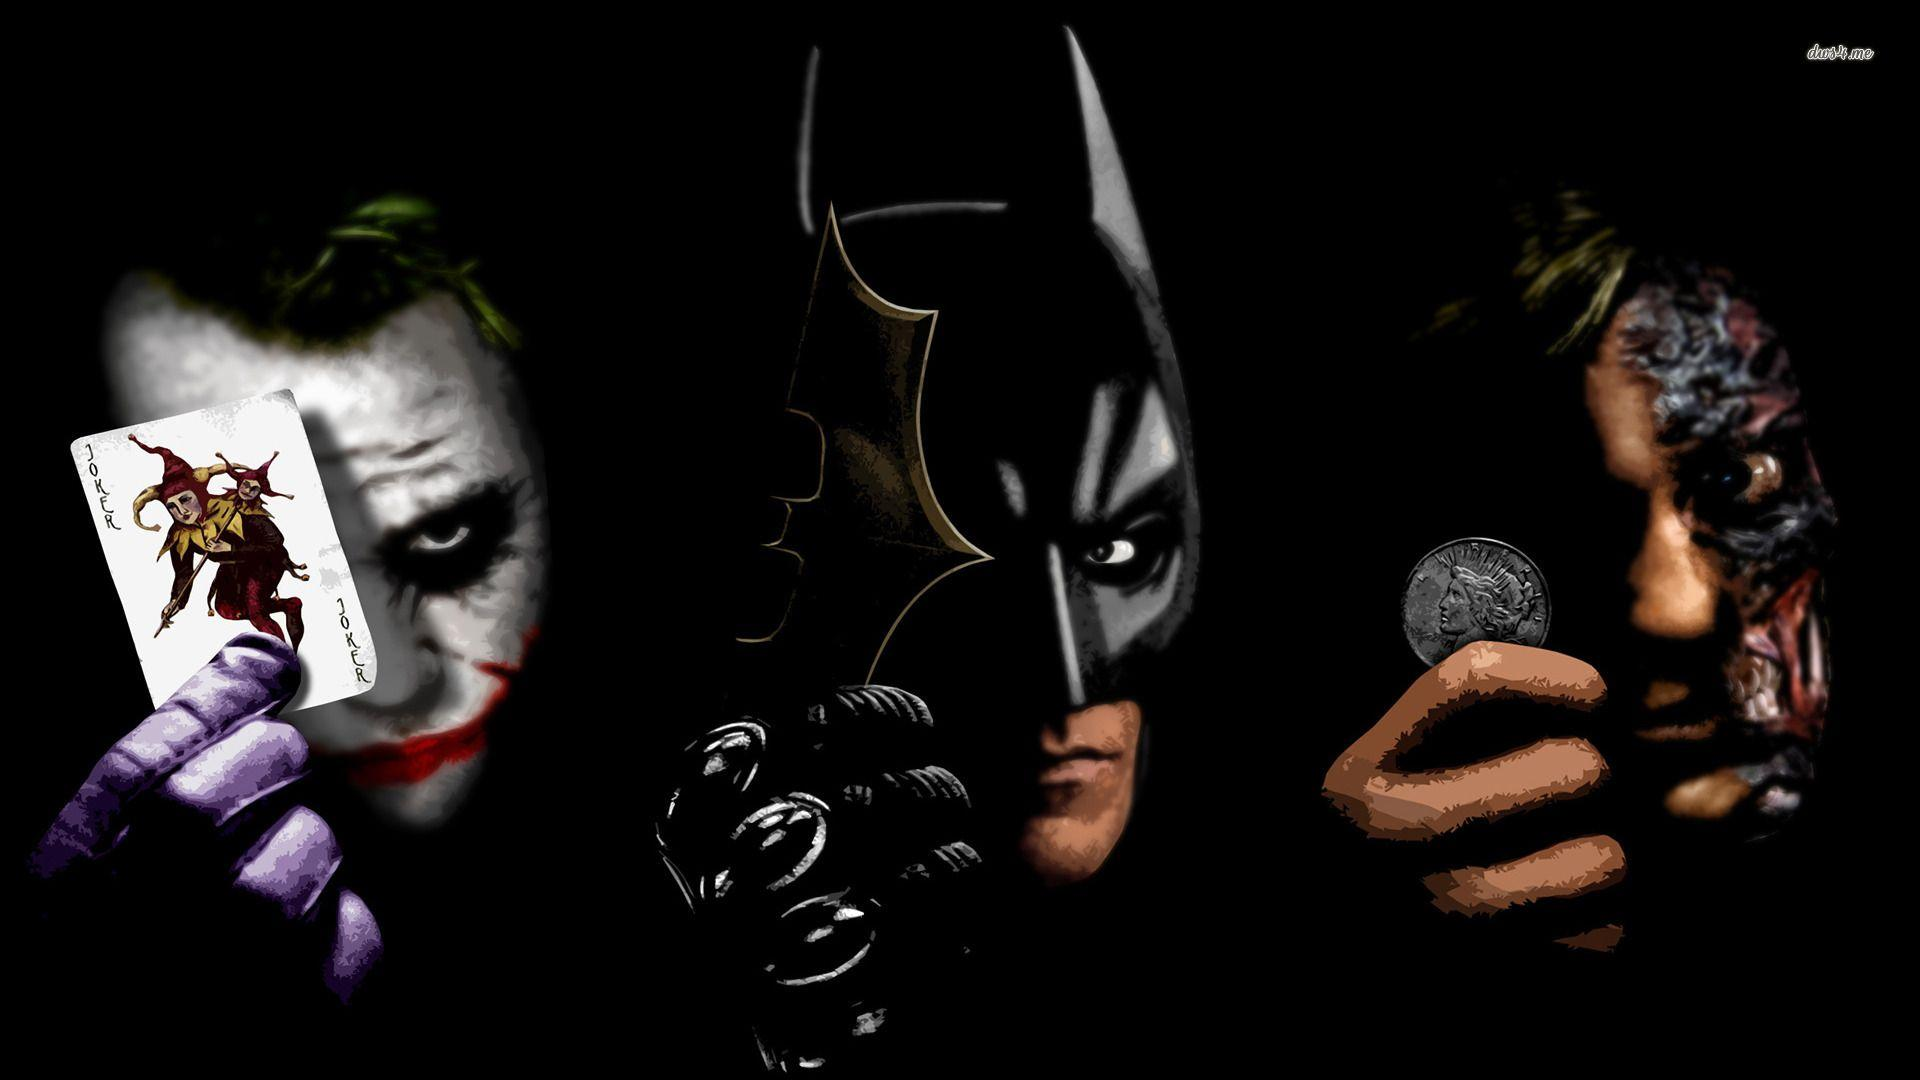 Joker, Batman and Two Face wallpaper - Movie wallpapers - #